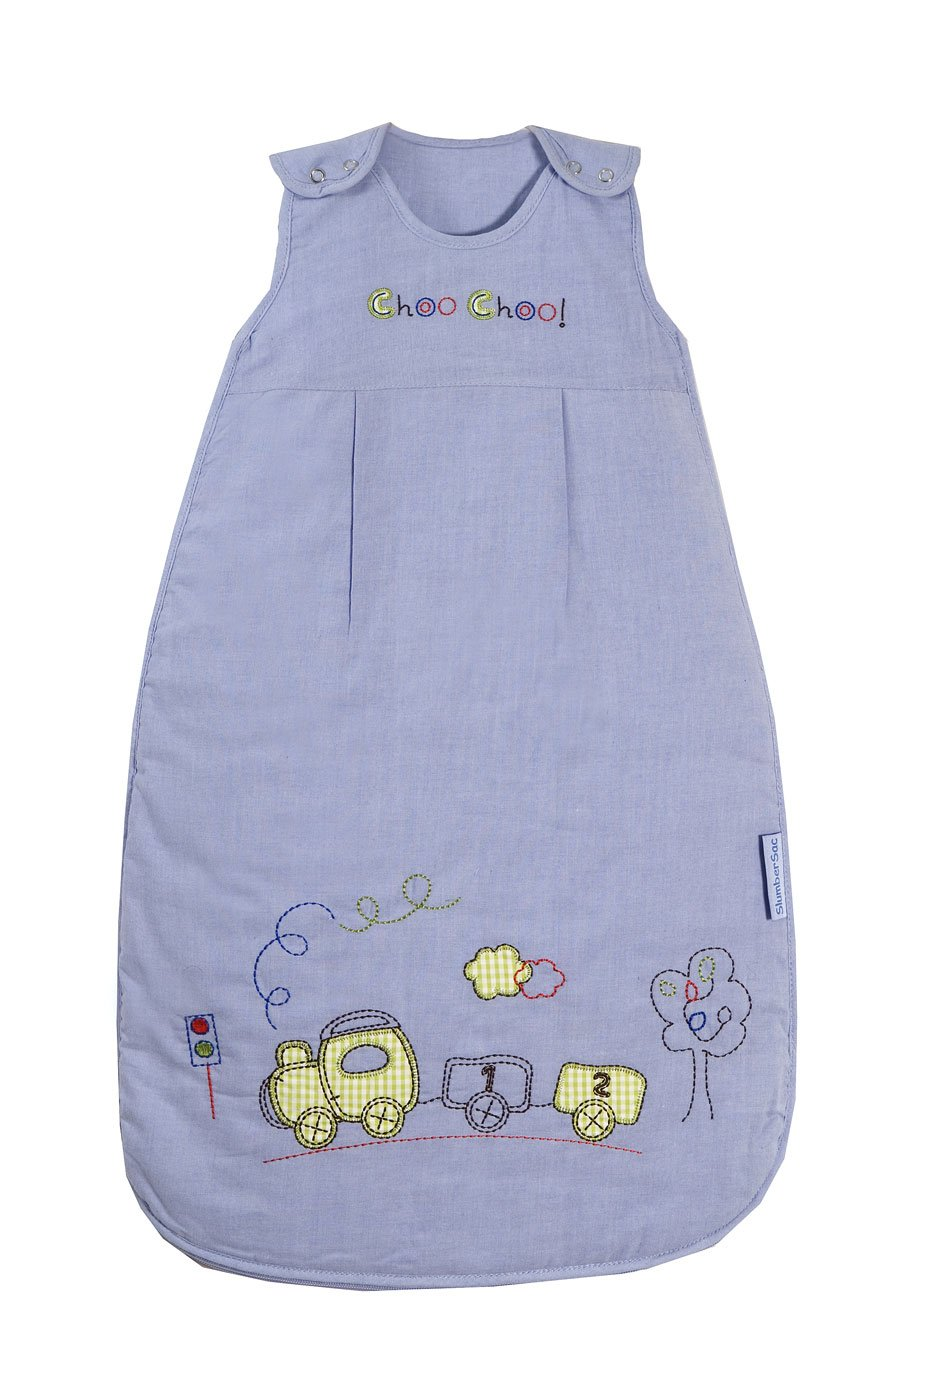 Slumbersafe Summer Baby Sleeping Bag 1 Tog - Choo Choo, 0-6 months/SMALL